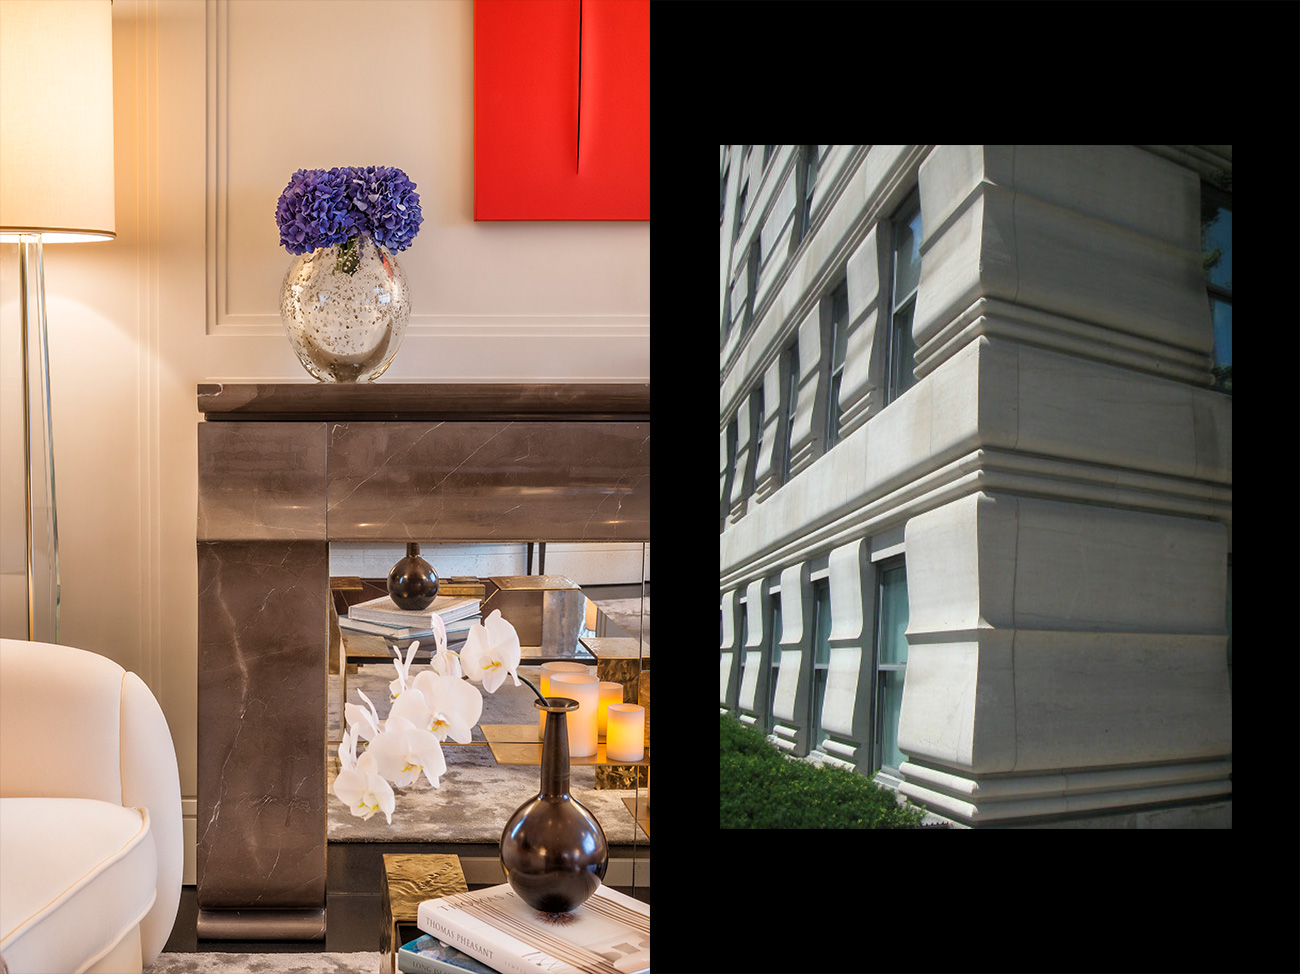 inspiration for the fireplace in this New York pied-a-terre comes from the architecture of the Rosario Candela-designed building at 19 East 76th Street in Manhattan